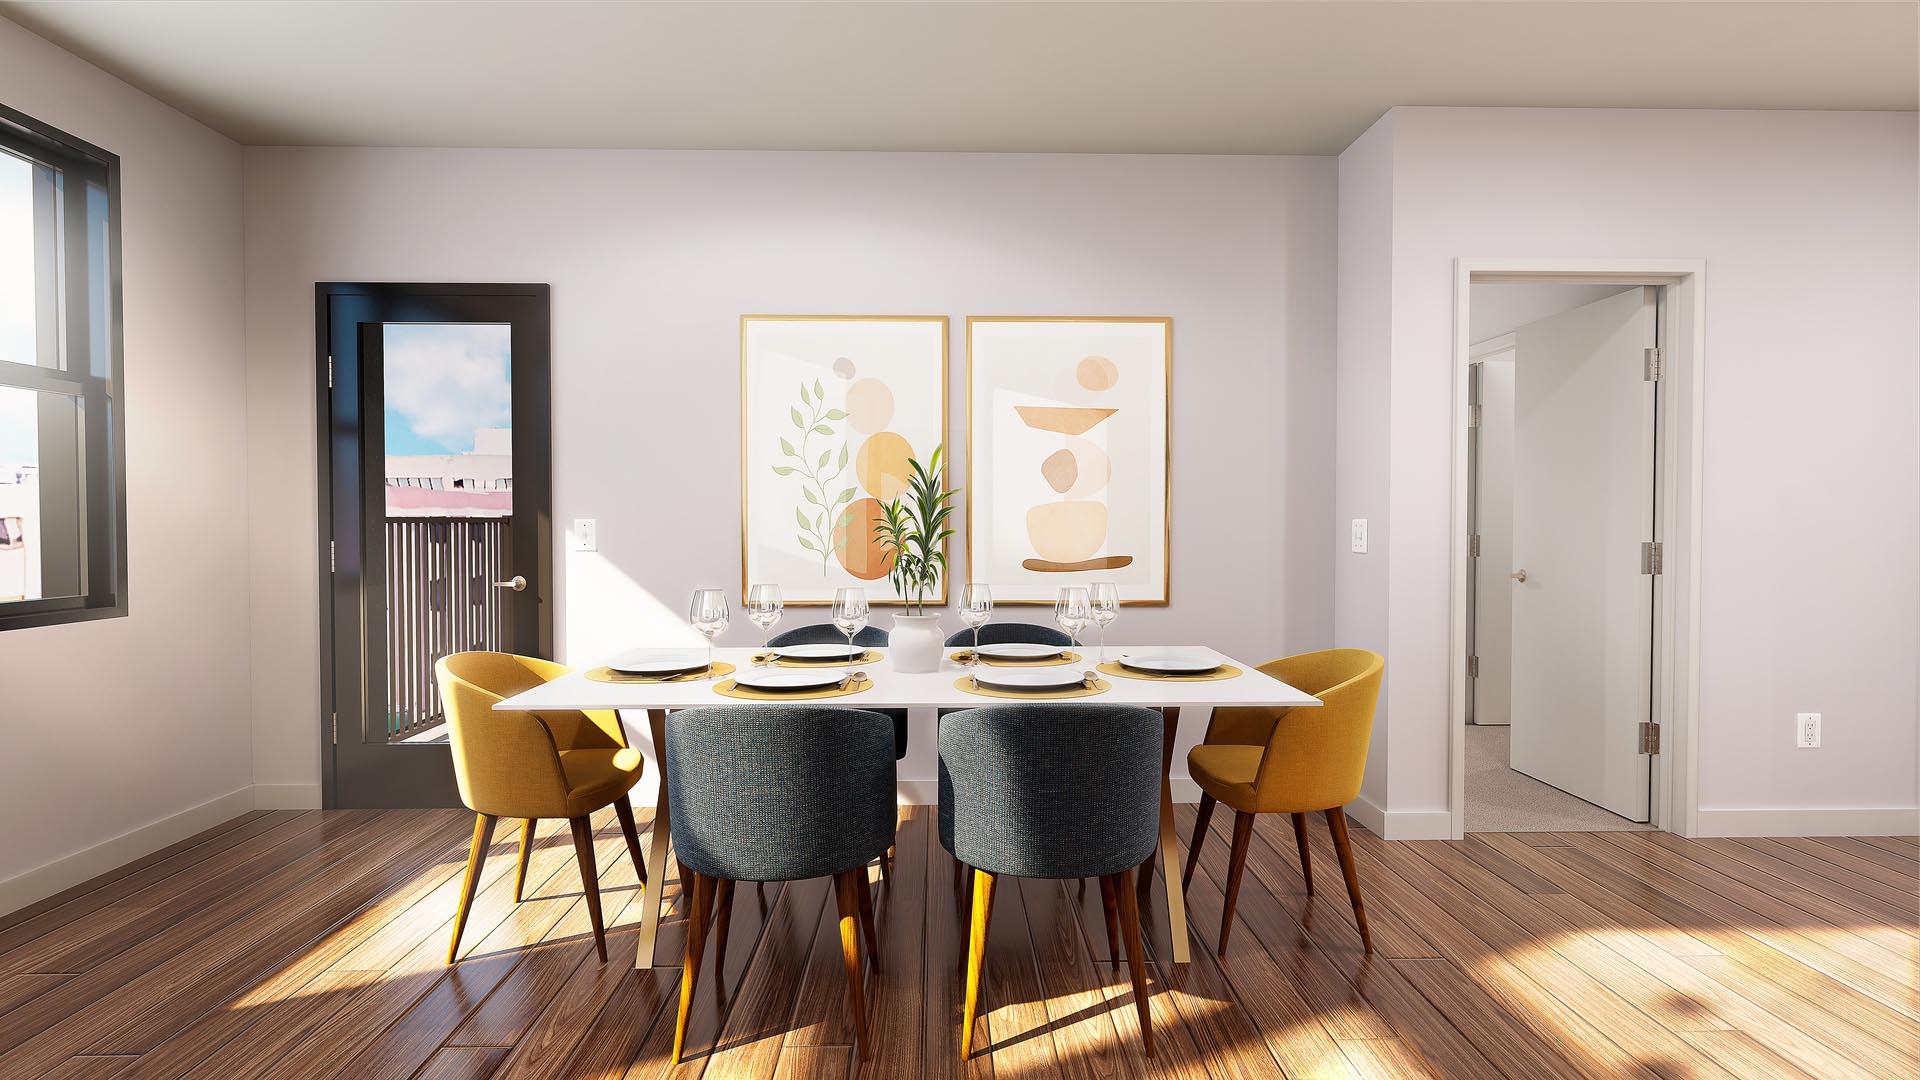 3D rendering of a dining room with table and chairs